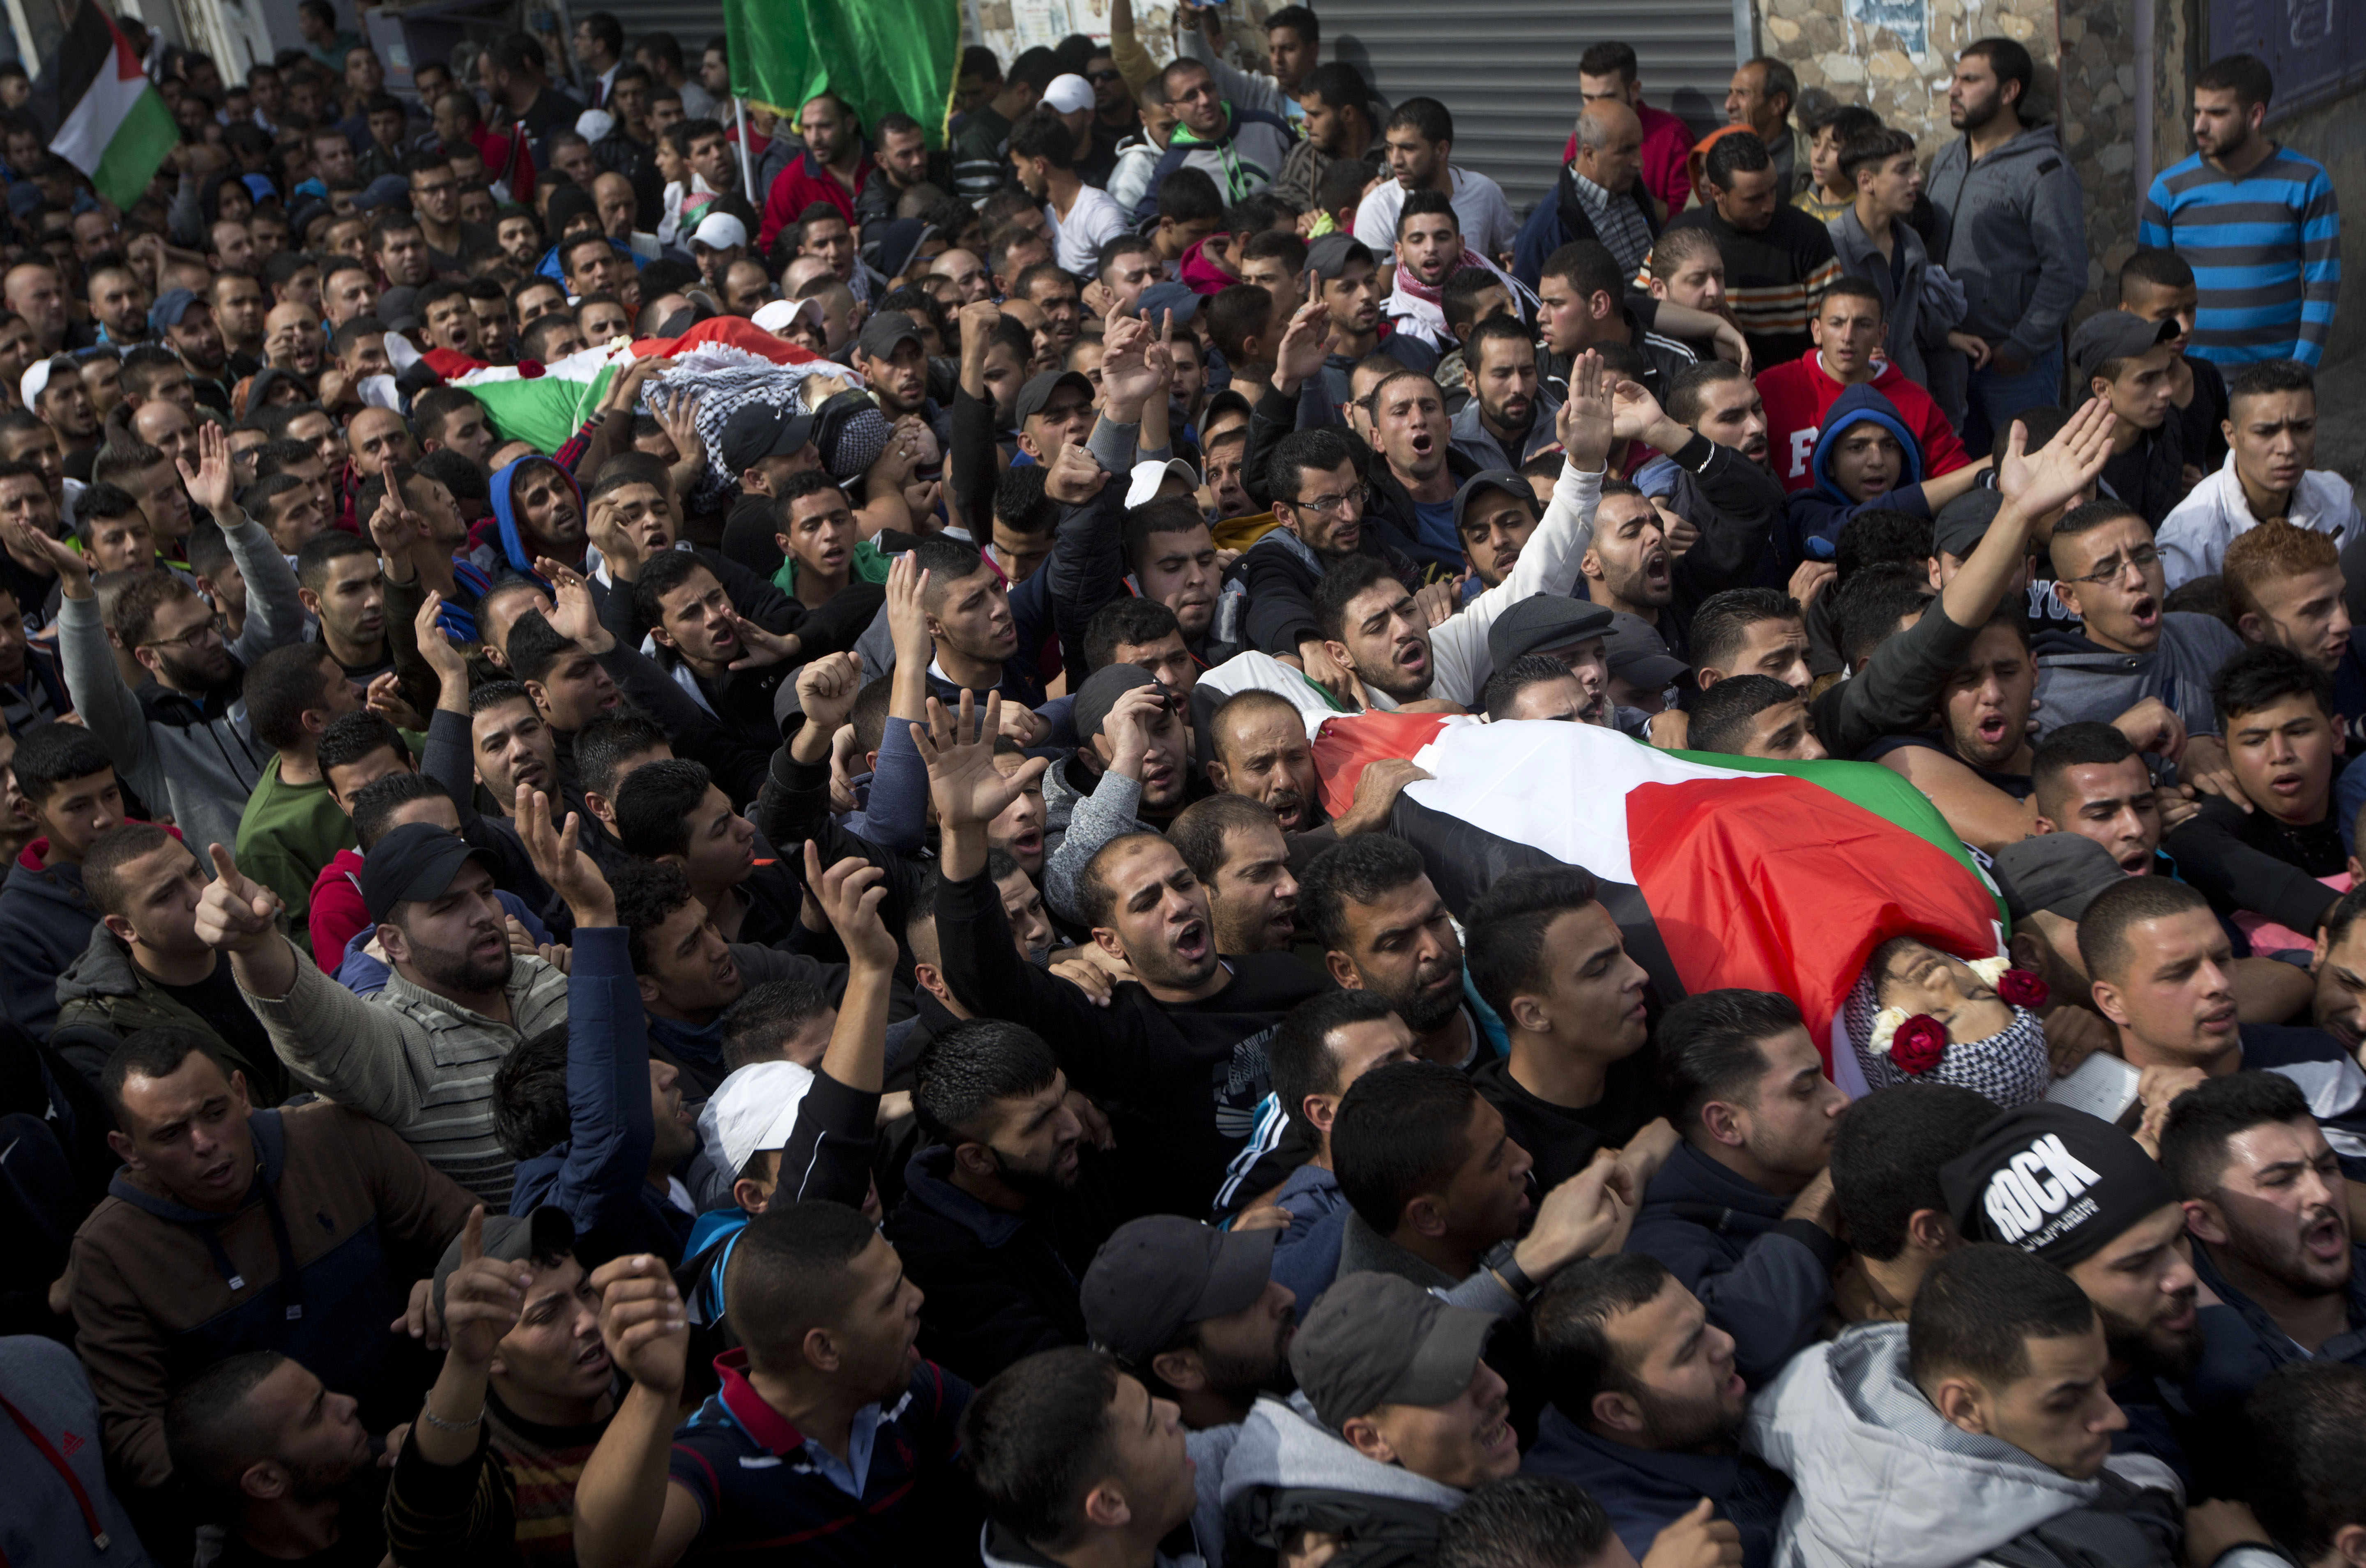 Palestinians carry the bodies of Ahmed Abu al-Aish, 28, and Laith Manasrah, 21, during their funeral in the Qalandia refugee camp on the outskirts of the West Bank city of Ramallah, Monday, Nov. 16, 2015.